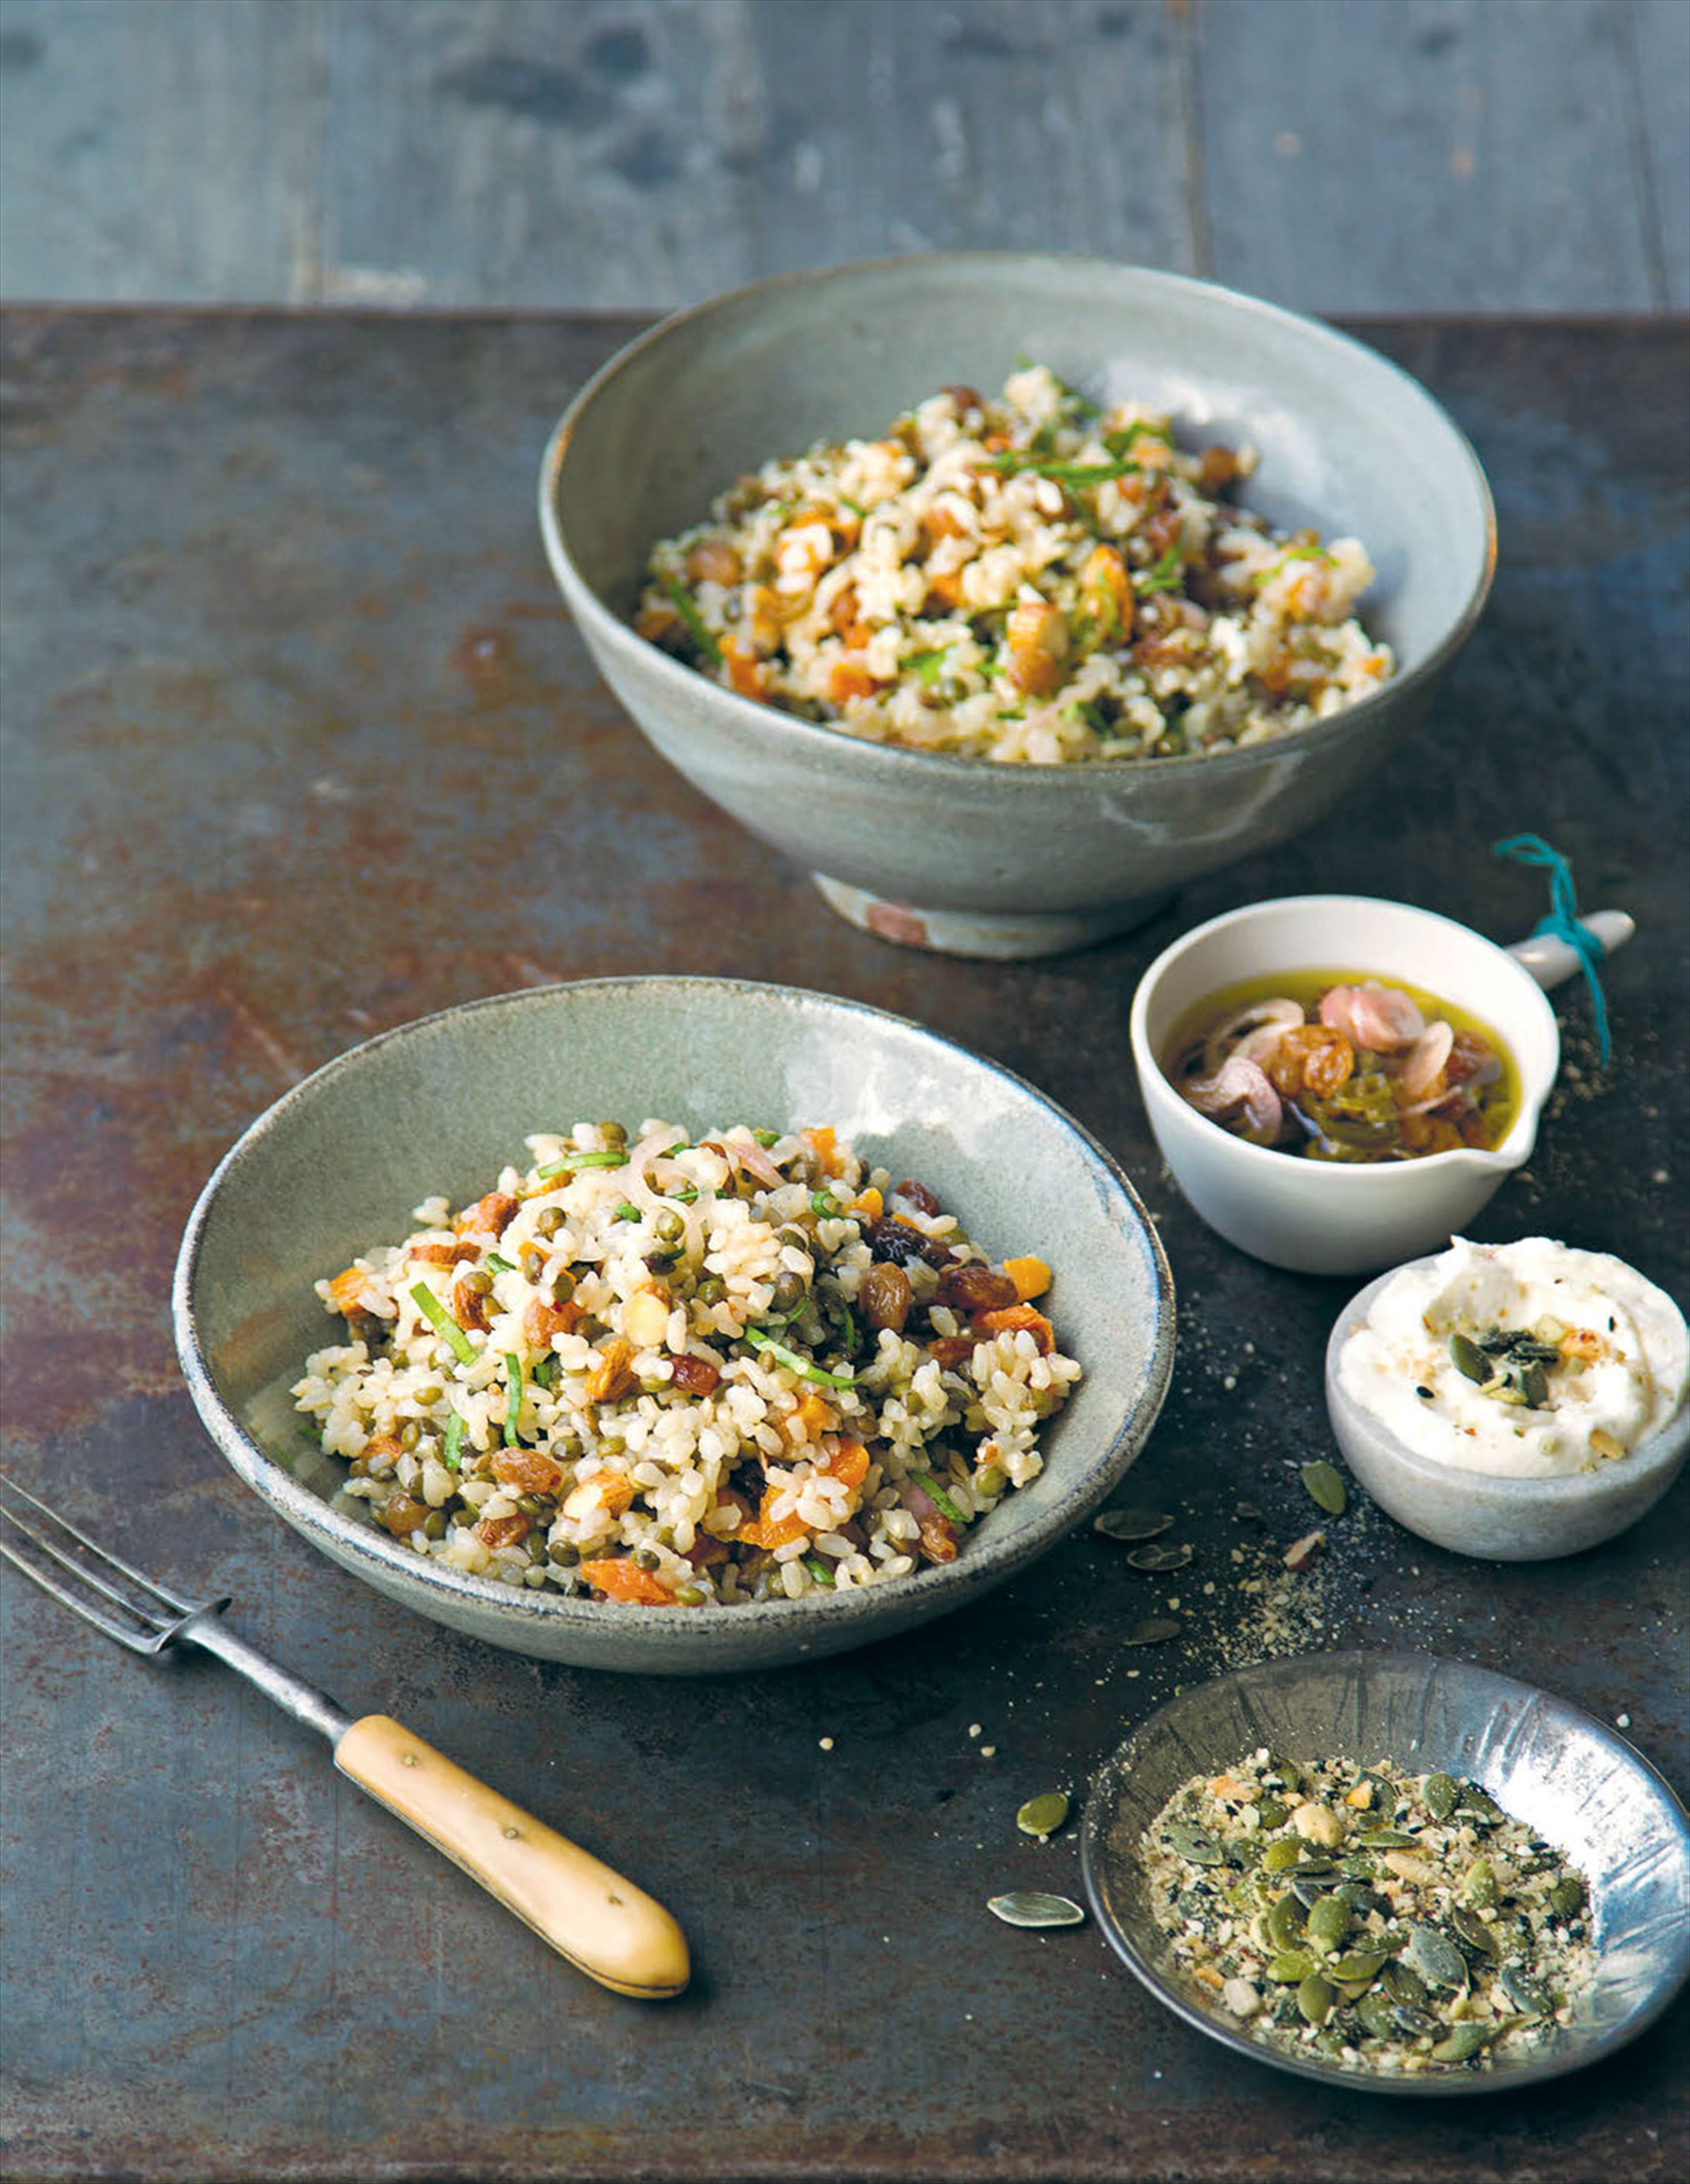 Brown rice and feta salad with hot 'n' sour dressing